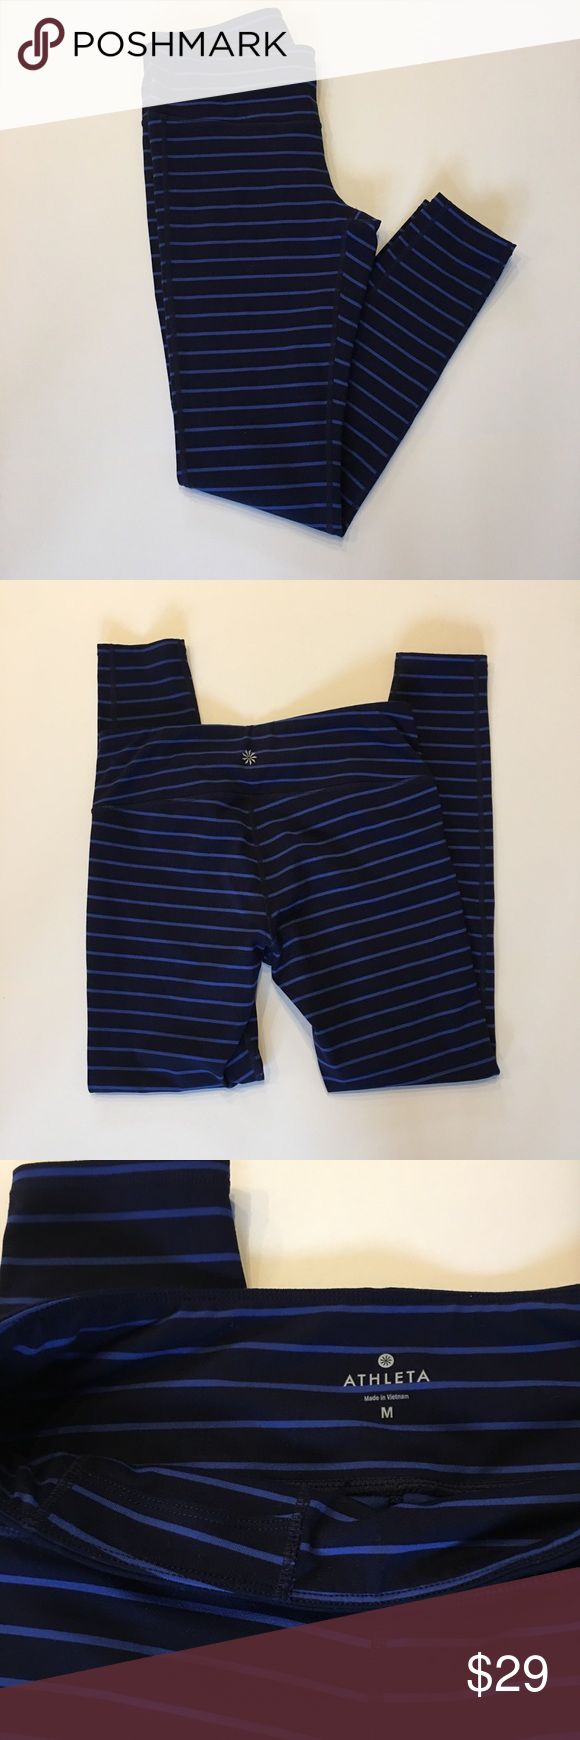 Athleta Chaturanga Navy Tights, Size Medium Athleta Chaturanga Navy Tights, Size Medium. Navy full length tight with lighter blue stripes. Pants are in great condition. Medium rise with interior waist pocket.  Washed and ready to wear. Home is smoke free. Athleta Pants